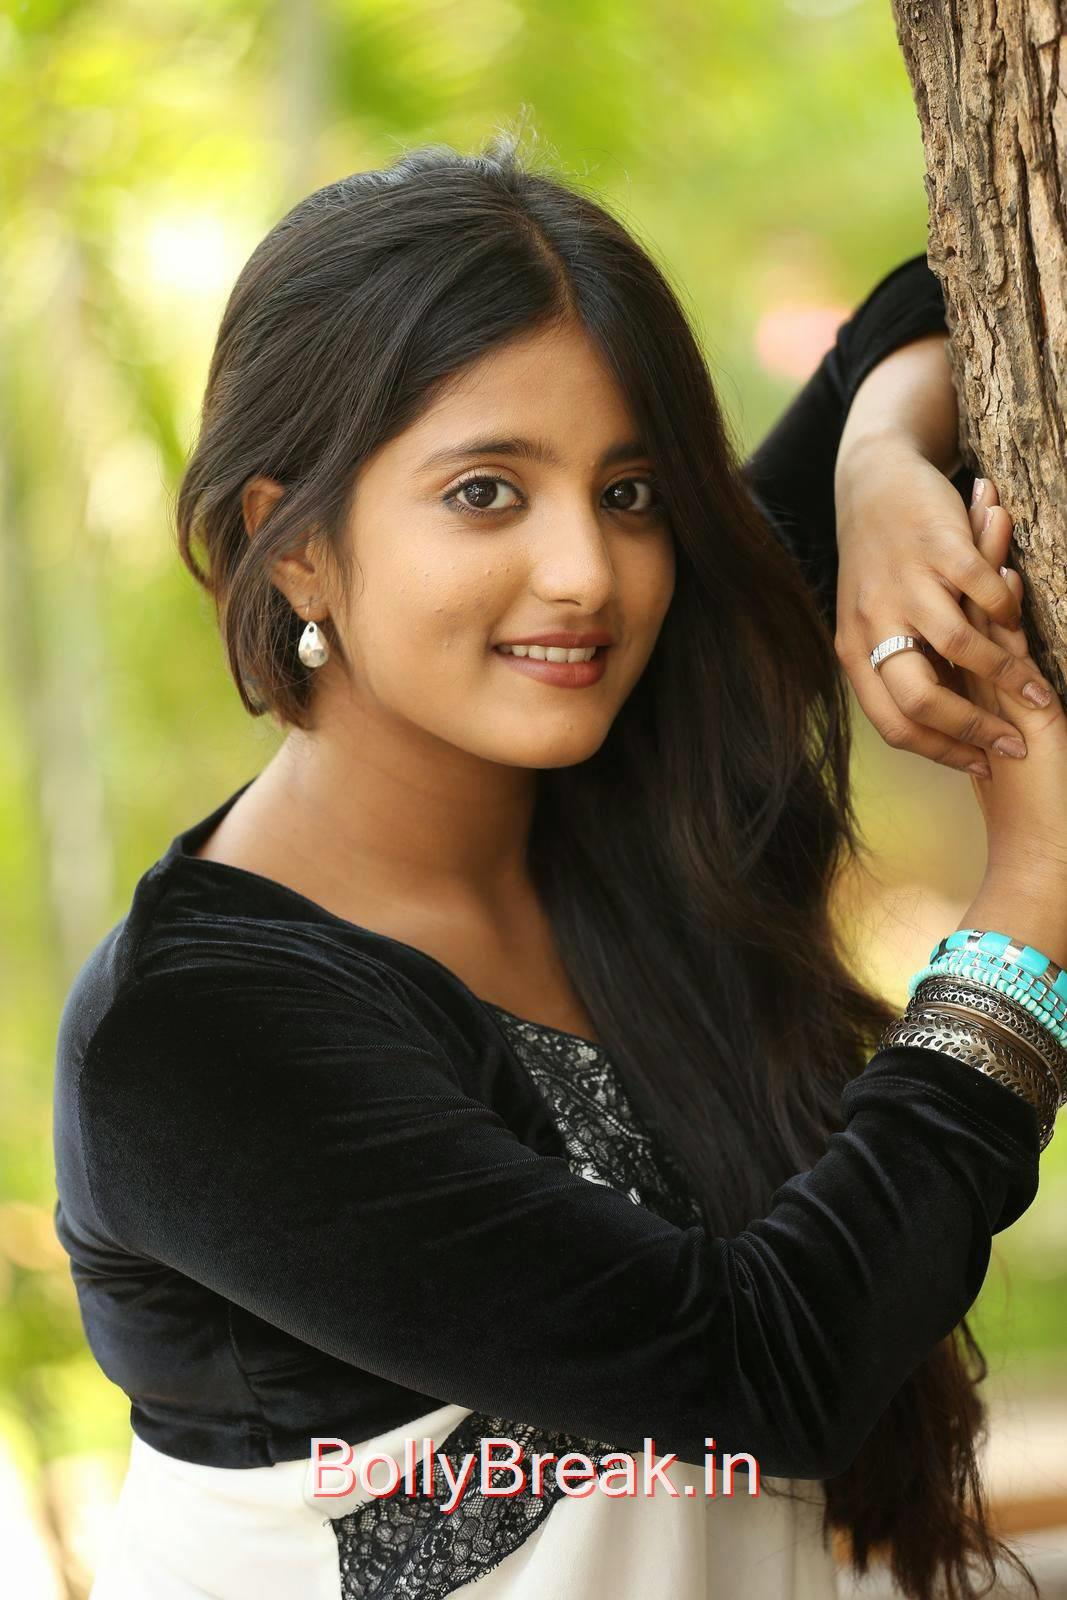 Ulka Gupta Stills At Andhra Pori Movie First Look Launch, Cute, Sweet, Innocent Indian Actress Ulka Gupta hot HD Photo Gallery Pics